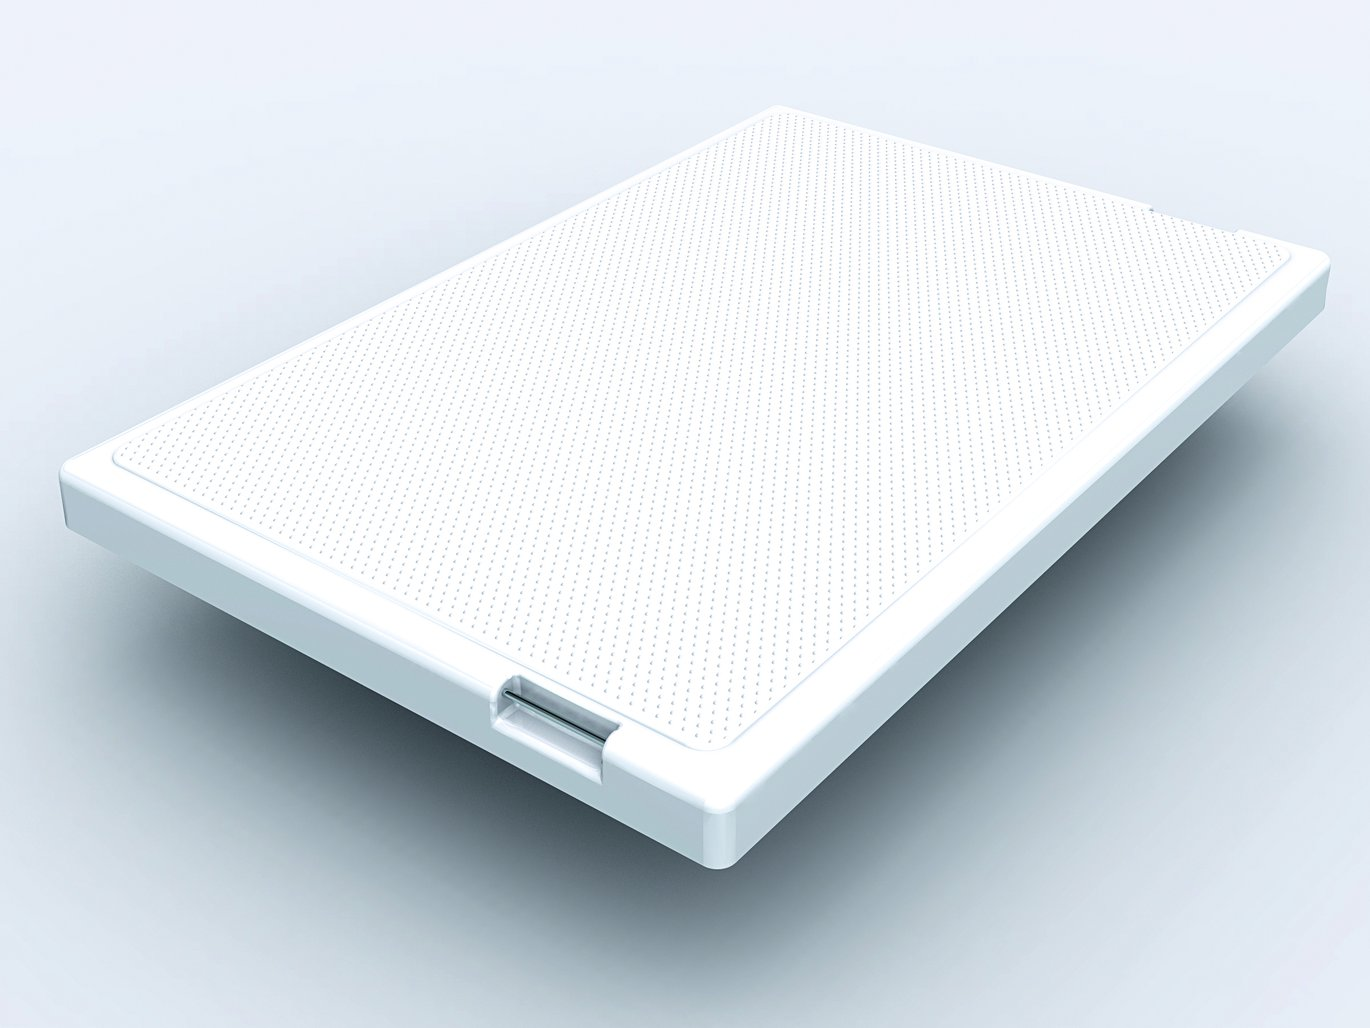 rectangular inspection cover with non-slip coating